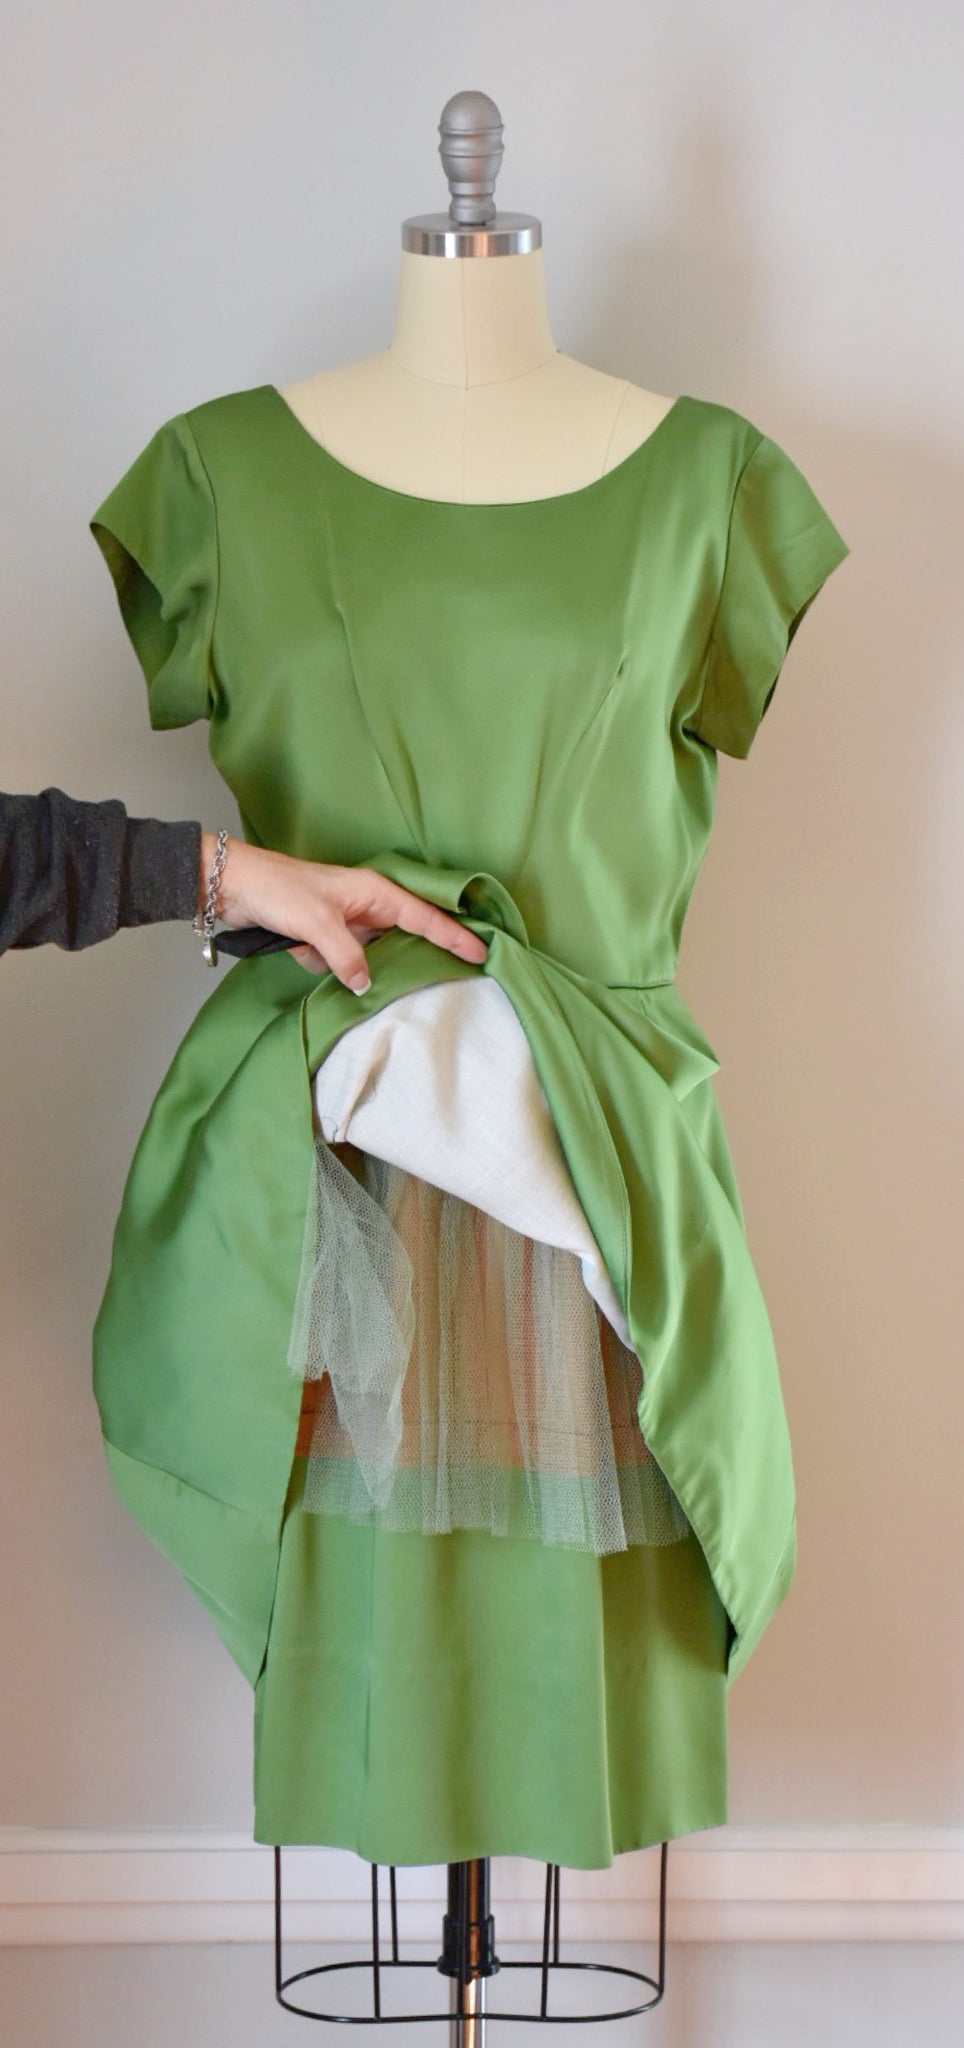 50s / 60s Green Satin Party Dress